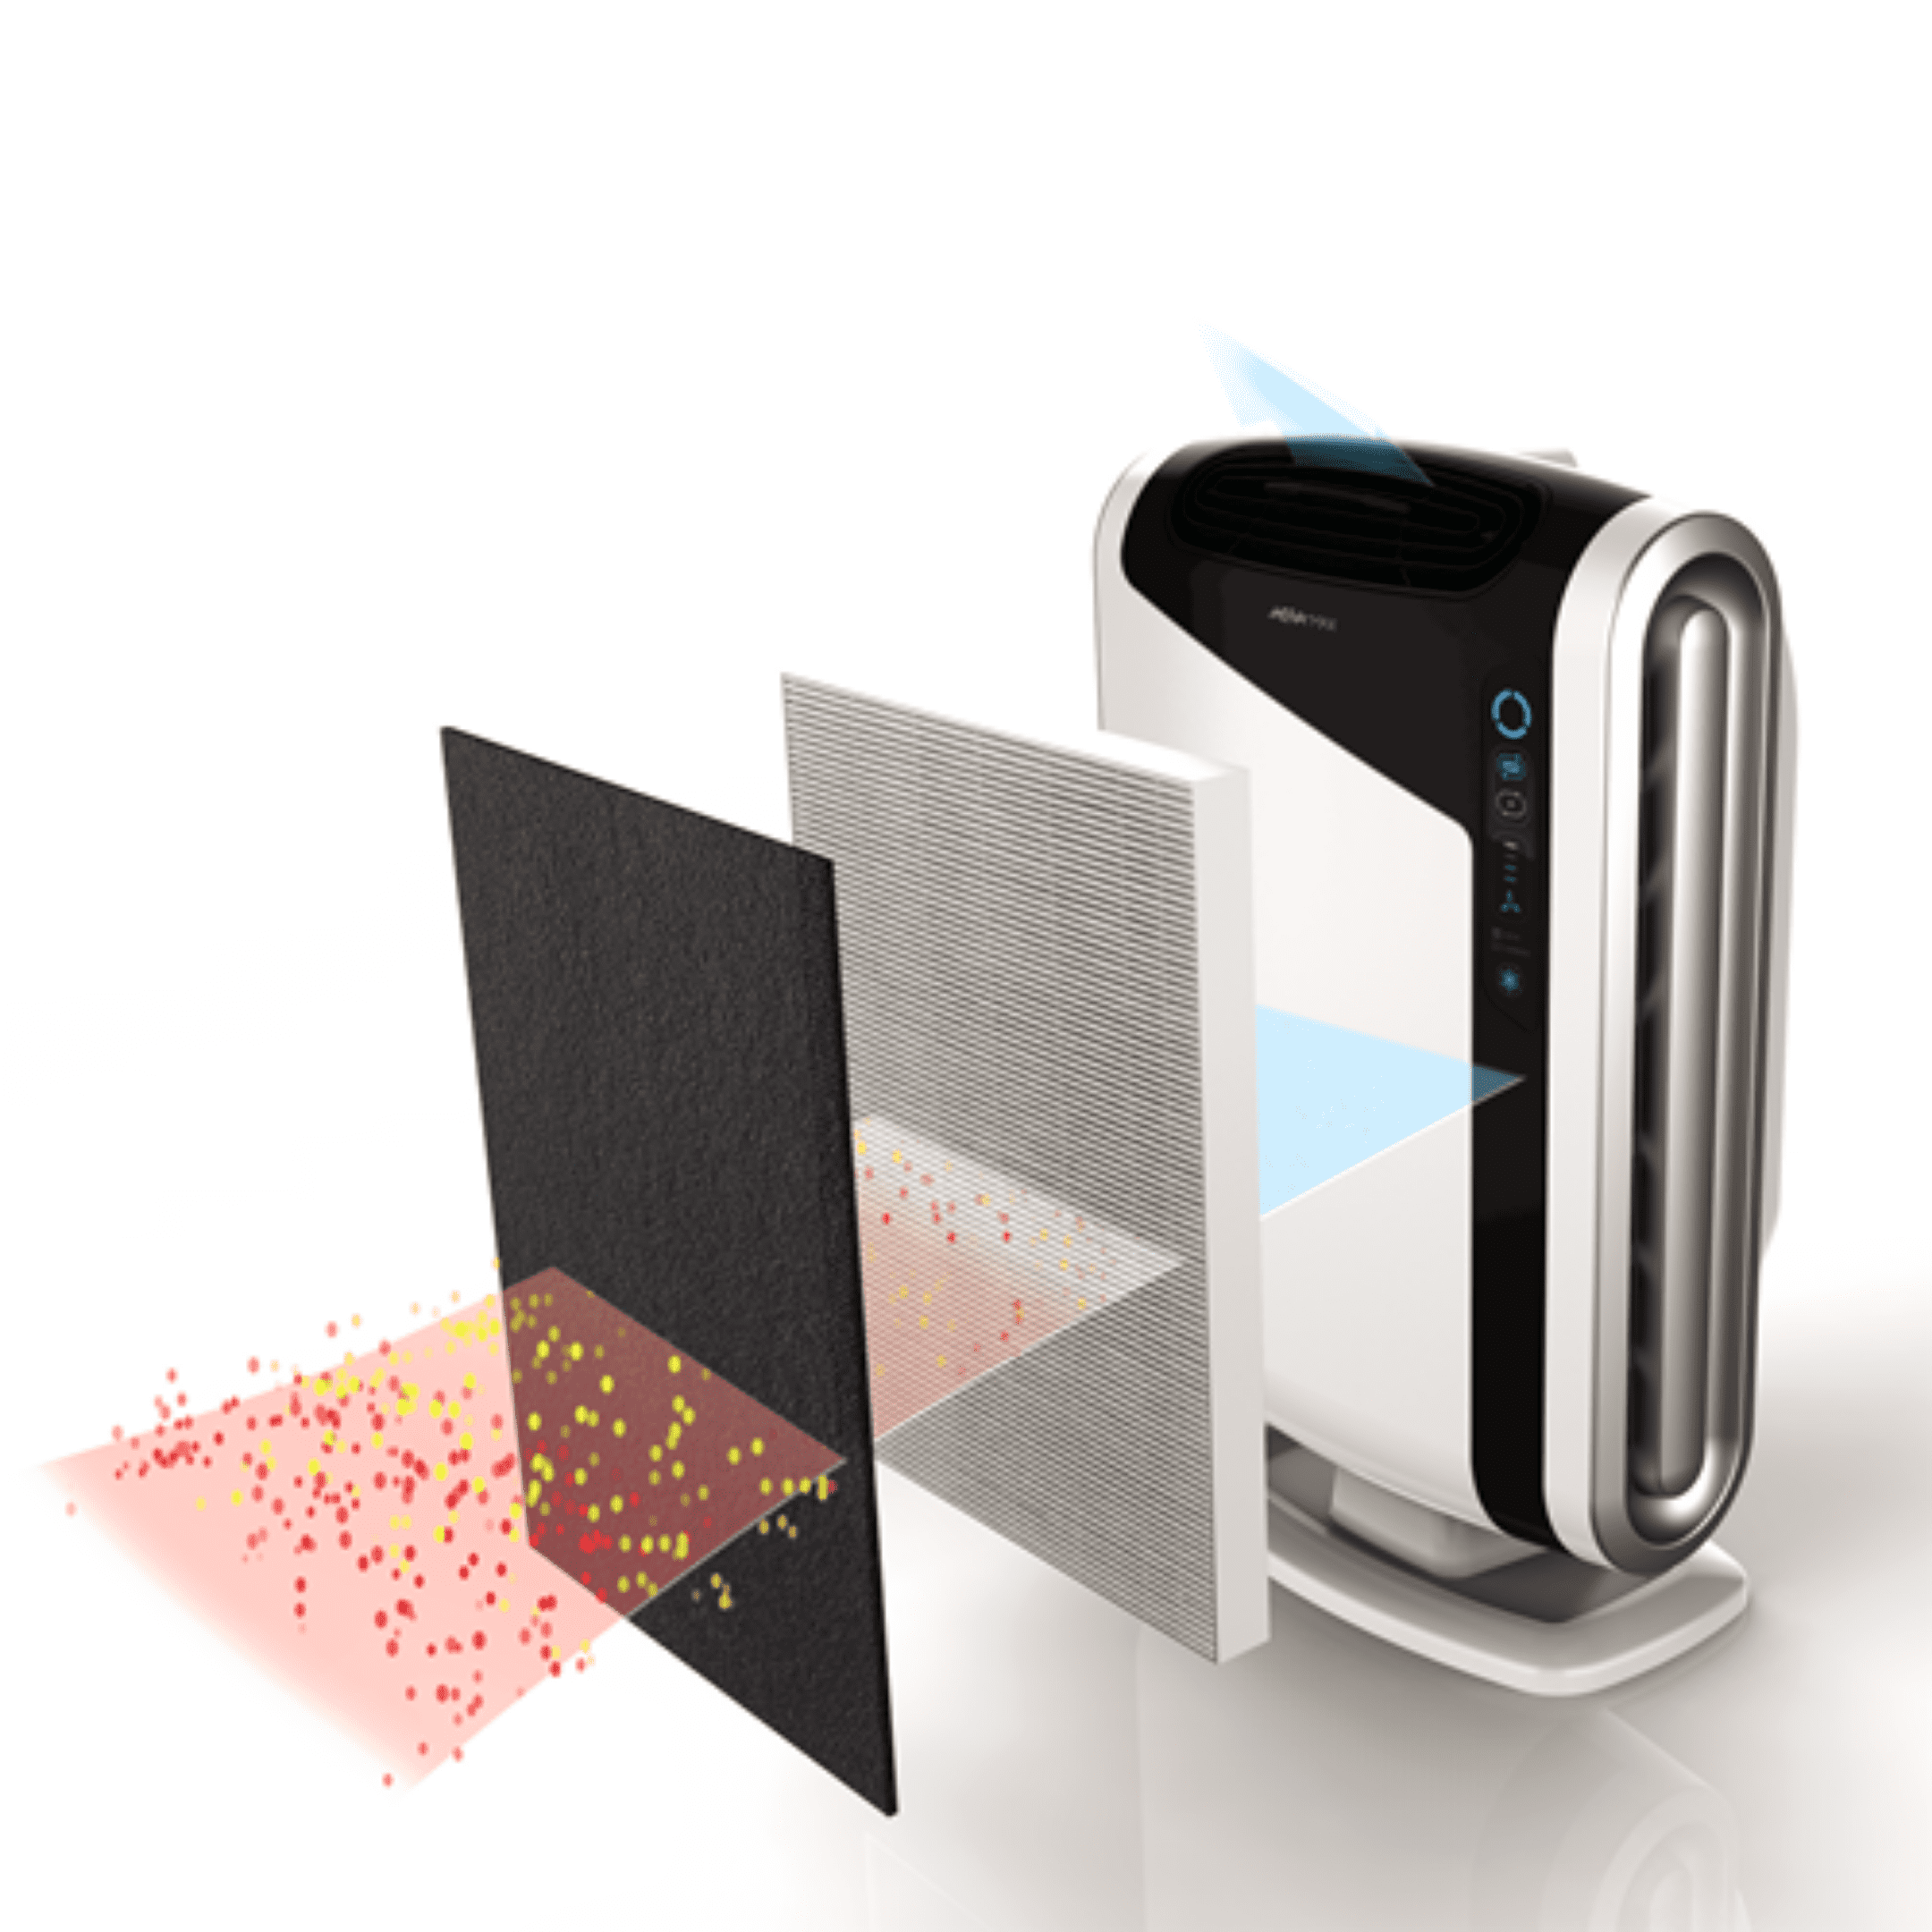 Fellowes Aeramax Air Purifier removes 99.97% of indoor air pollutants